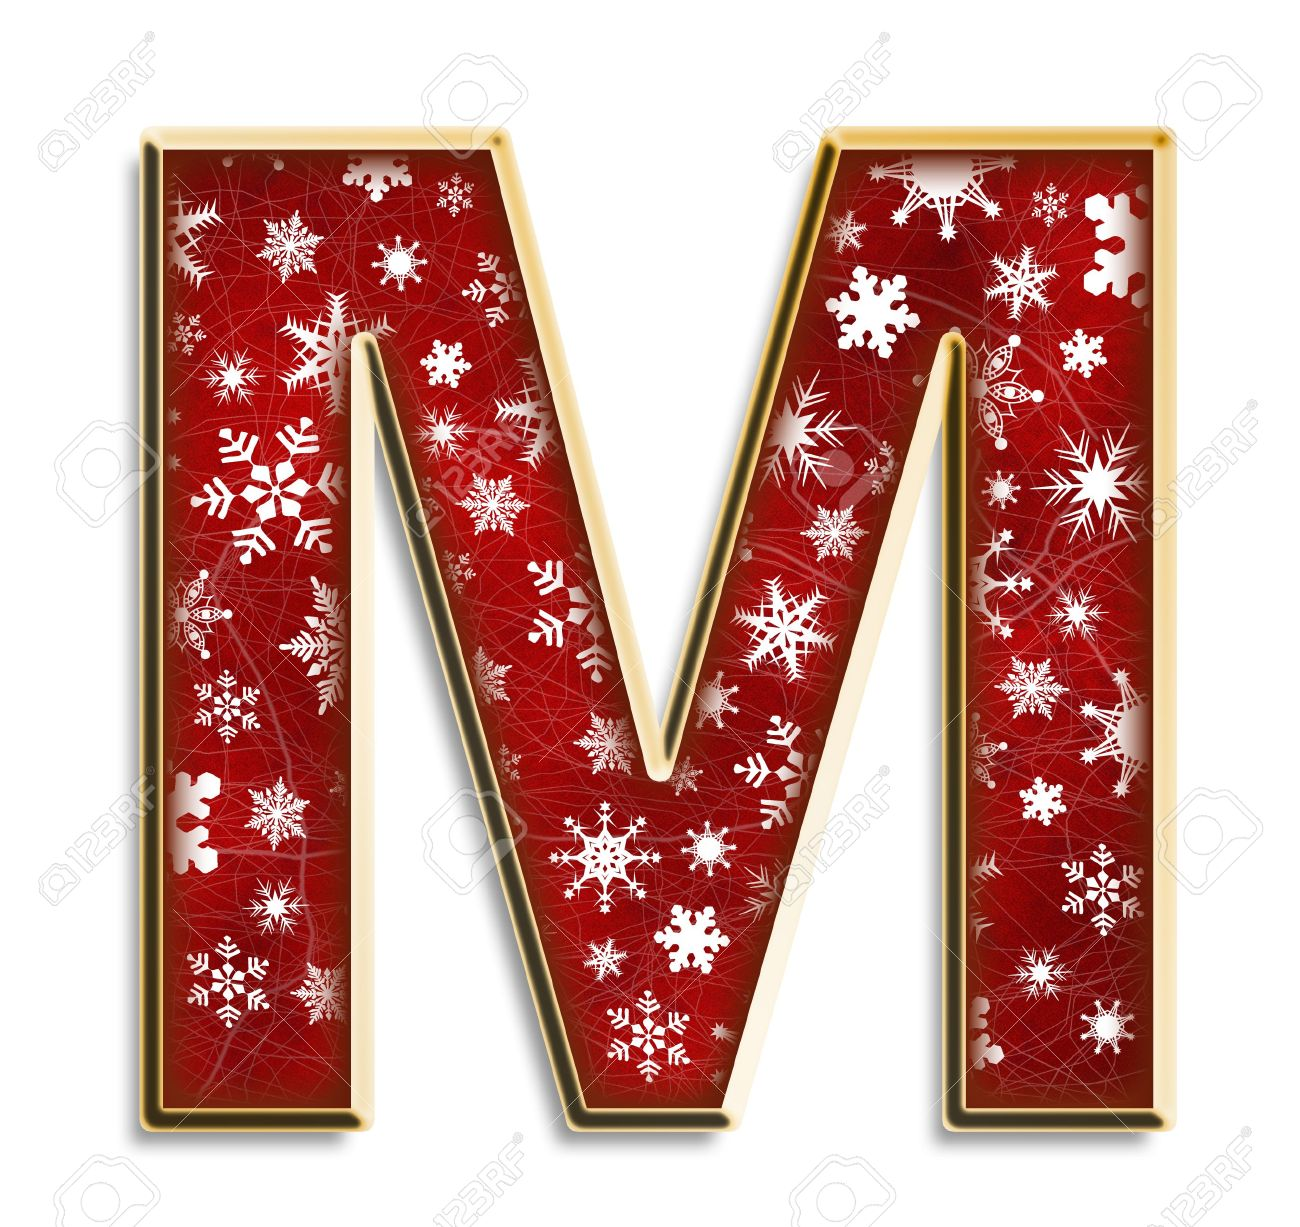 White Snowflakes On Red With Gold Capital Letter M Isolated